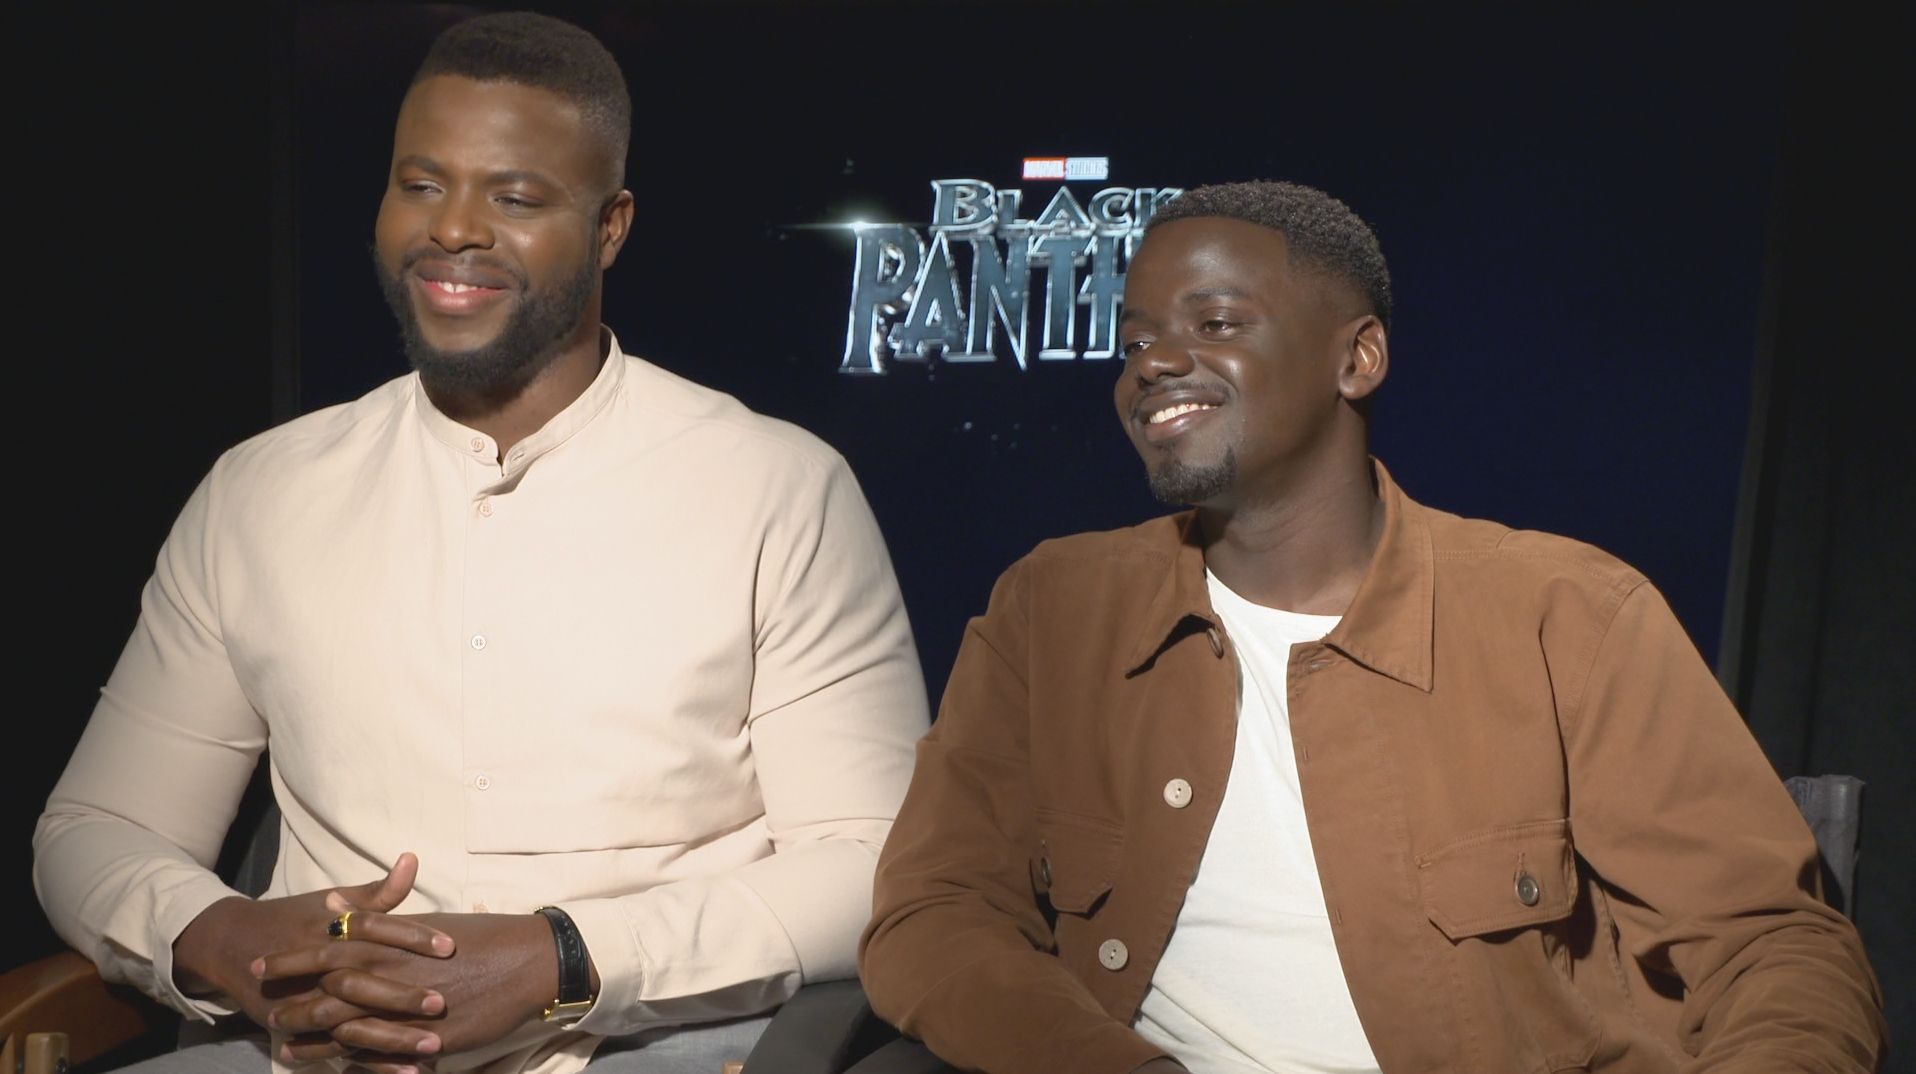 black panther daniel kaluuya winston duke interview - Daniel Kaluuya and Winston Duke on the Universal Themes of 'Black Panther'